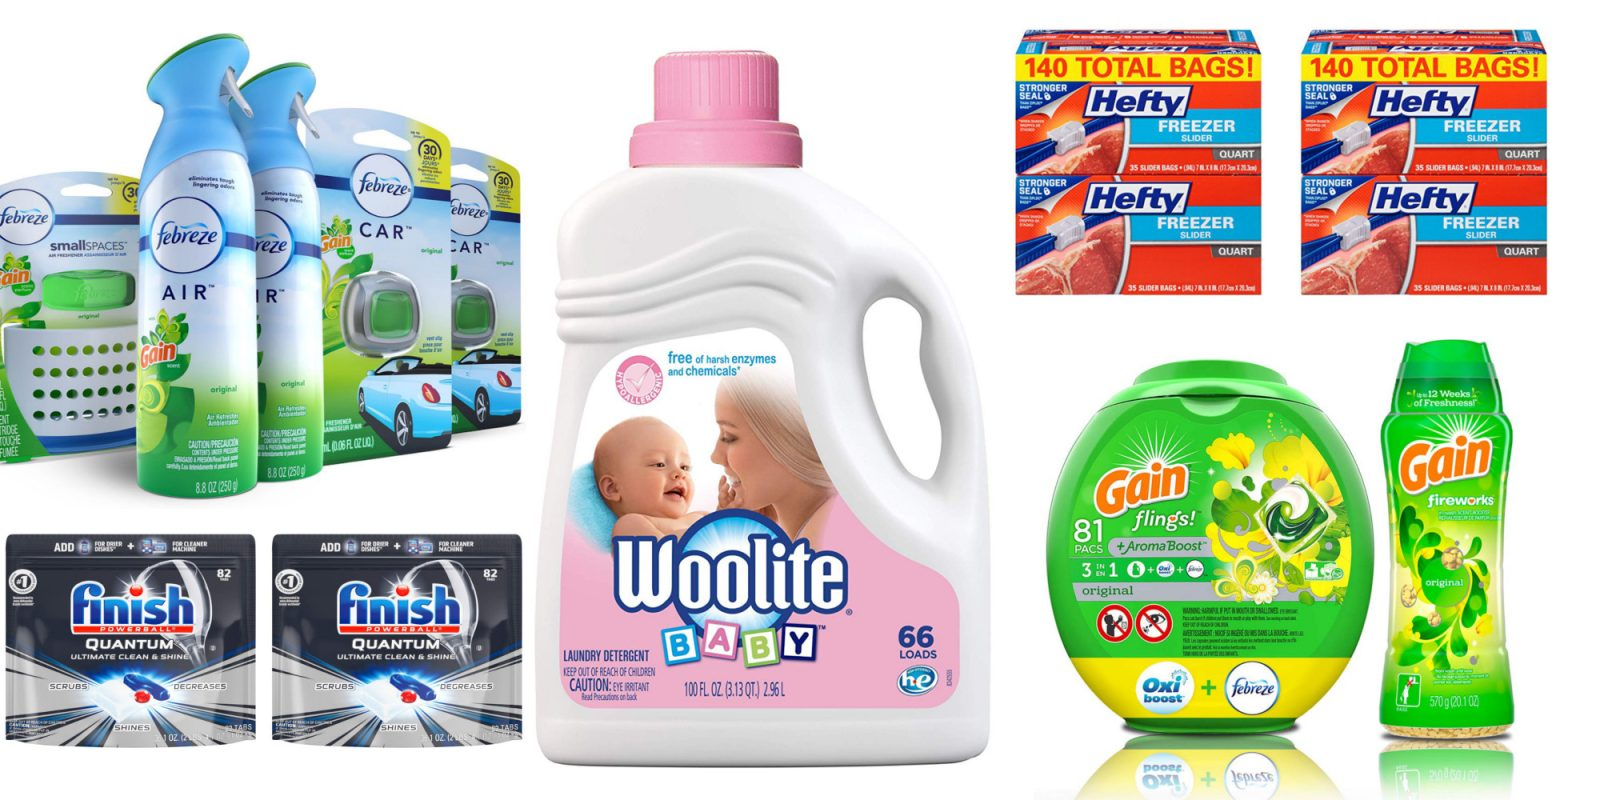 Prime Day household essentials from $3.50: Laundry pacs, Febreeze, much more